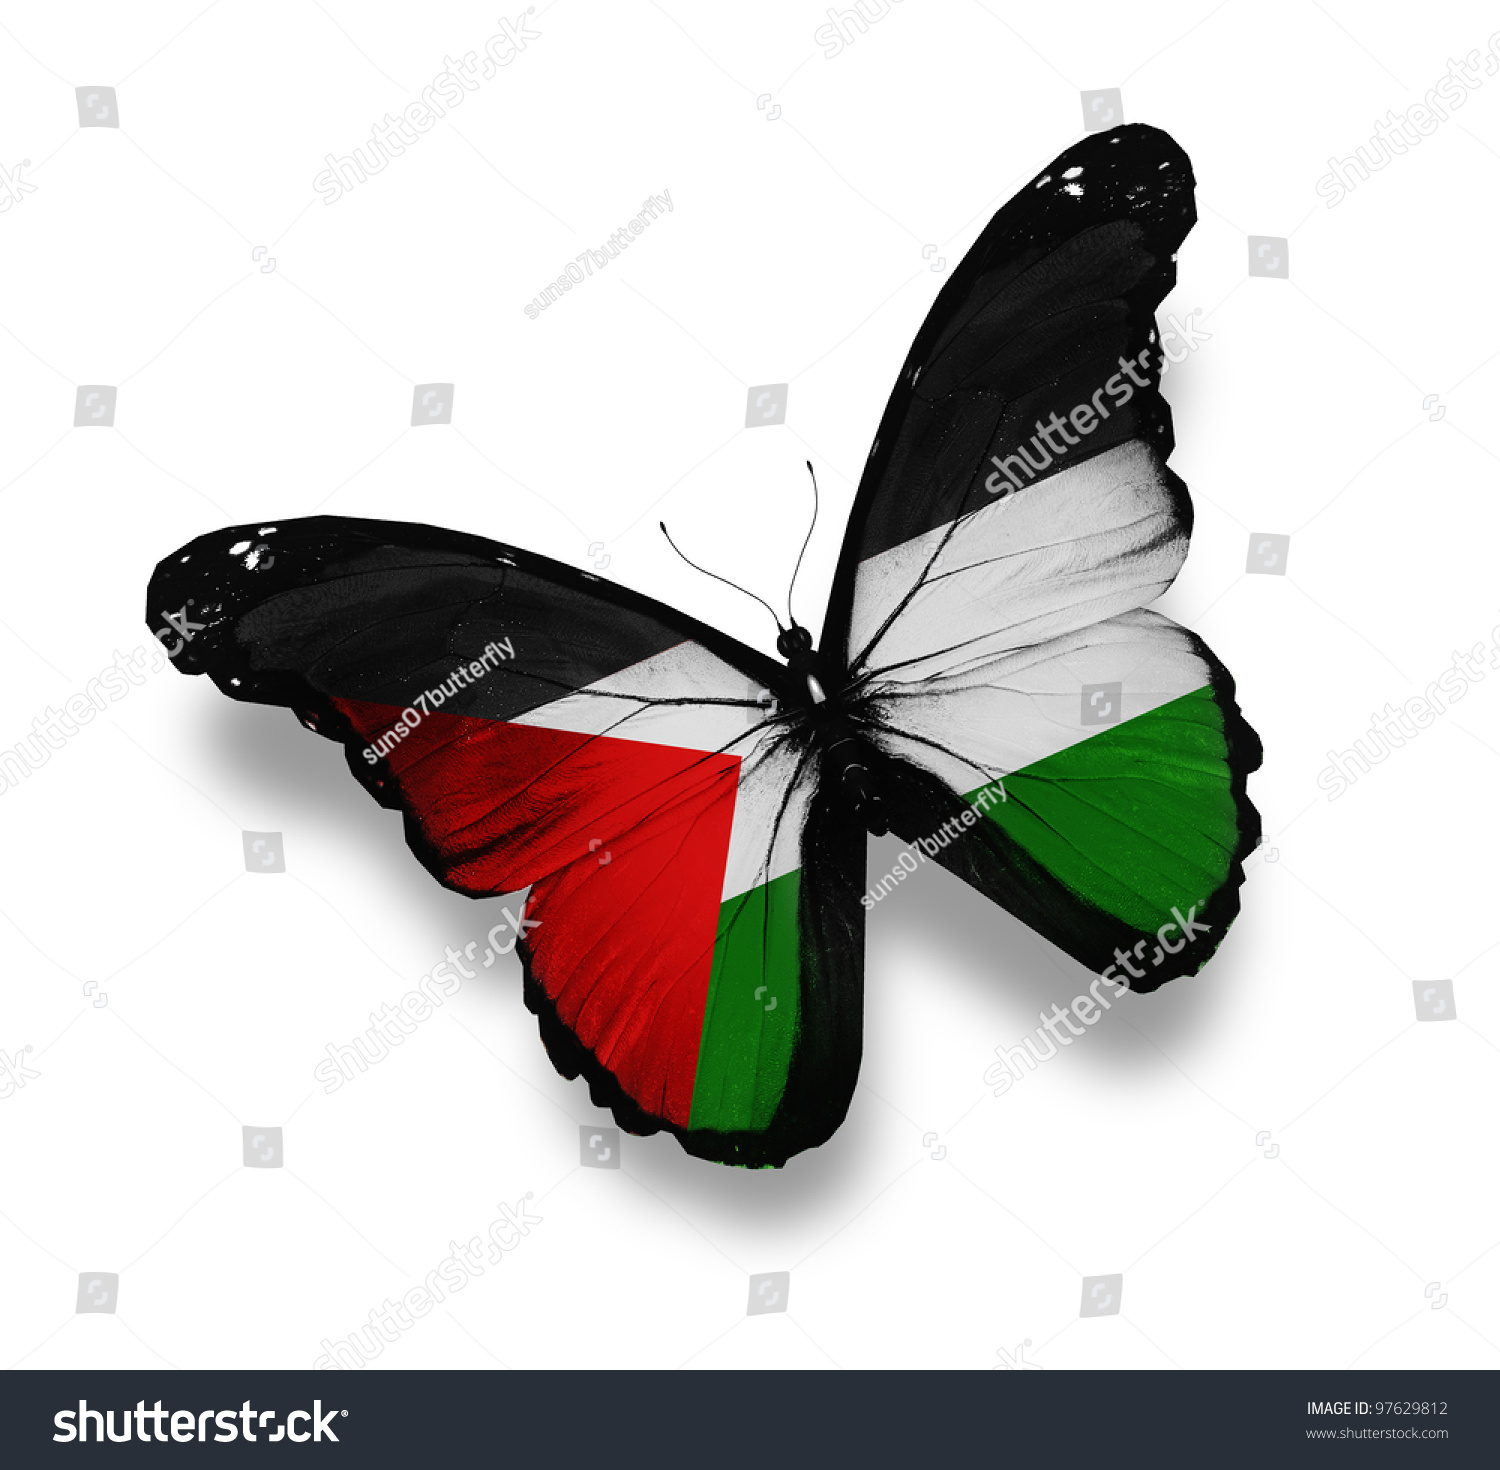 palestine black single men Palestine: painting the world with a single brush  black, green and white colors, denoting the flag of palestine  accords, resolutions the jargon of men in .